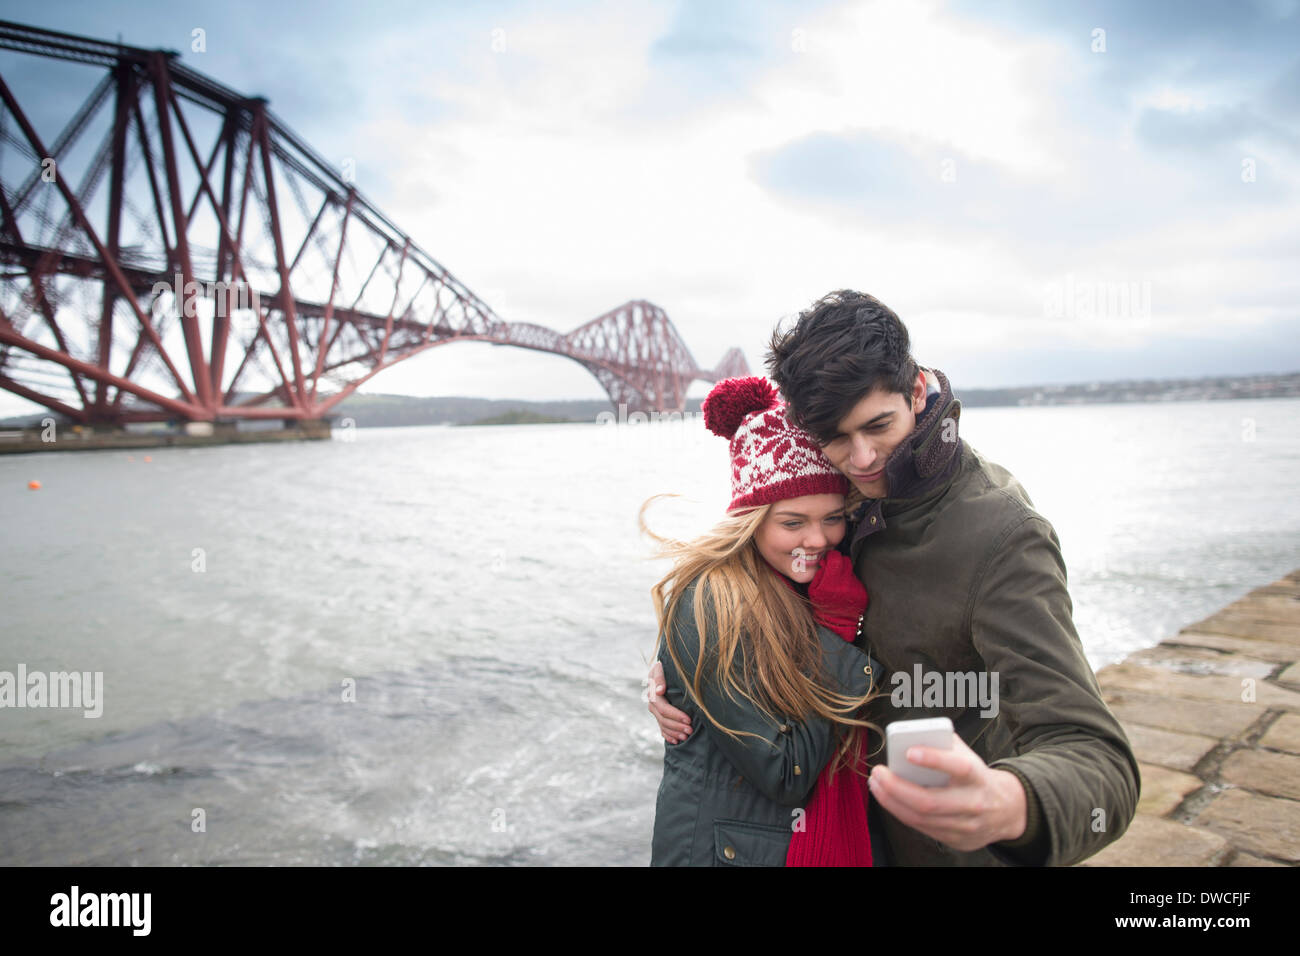 A young couple pose in front of the Forth Rail Bridge in Queensferry, near Edinburgh, Scotland - Stock Image